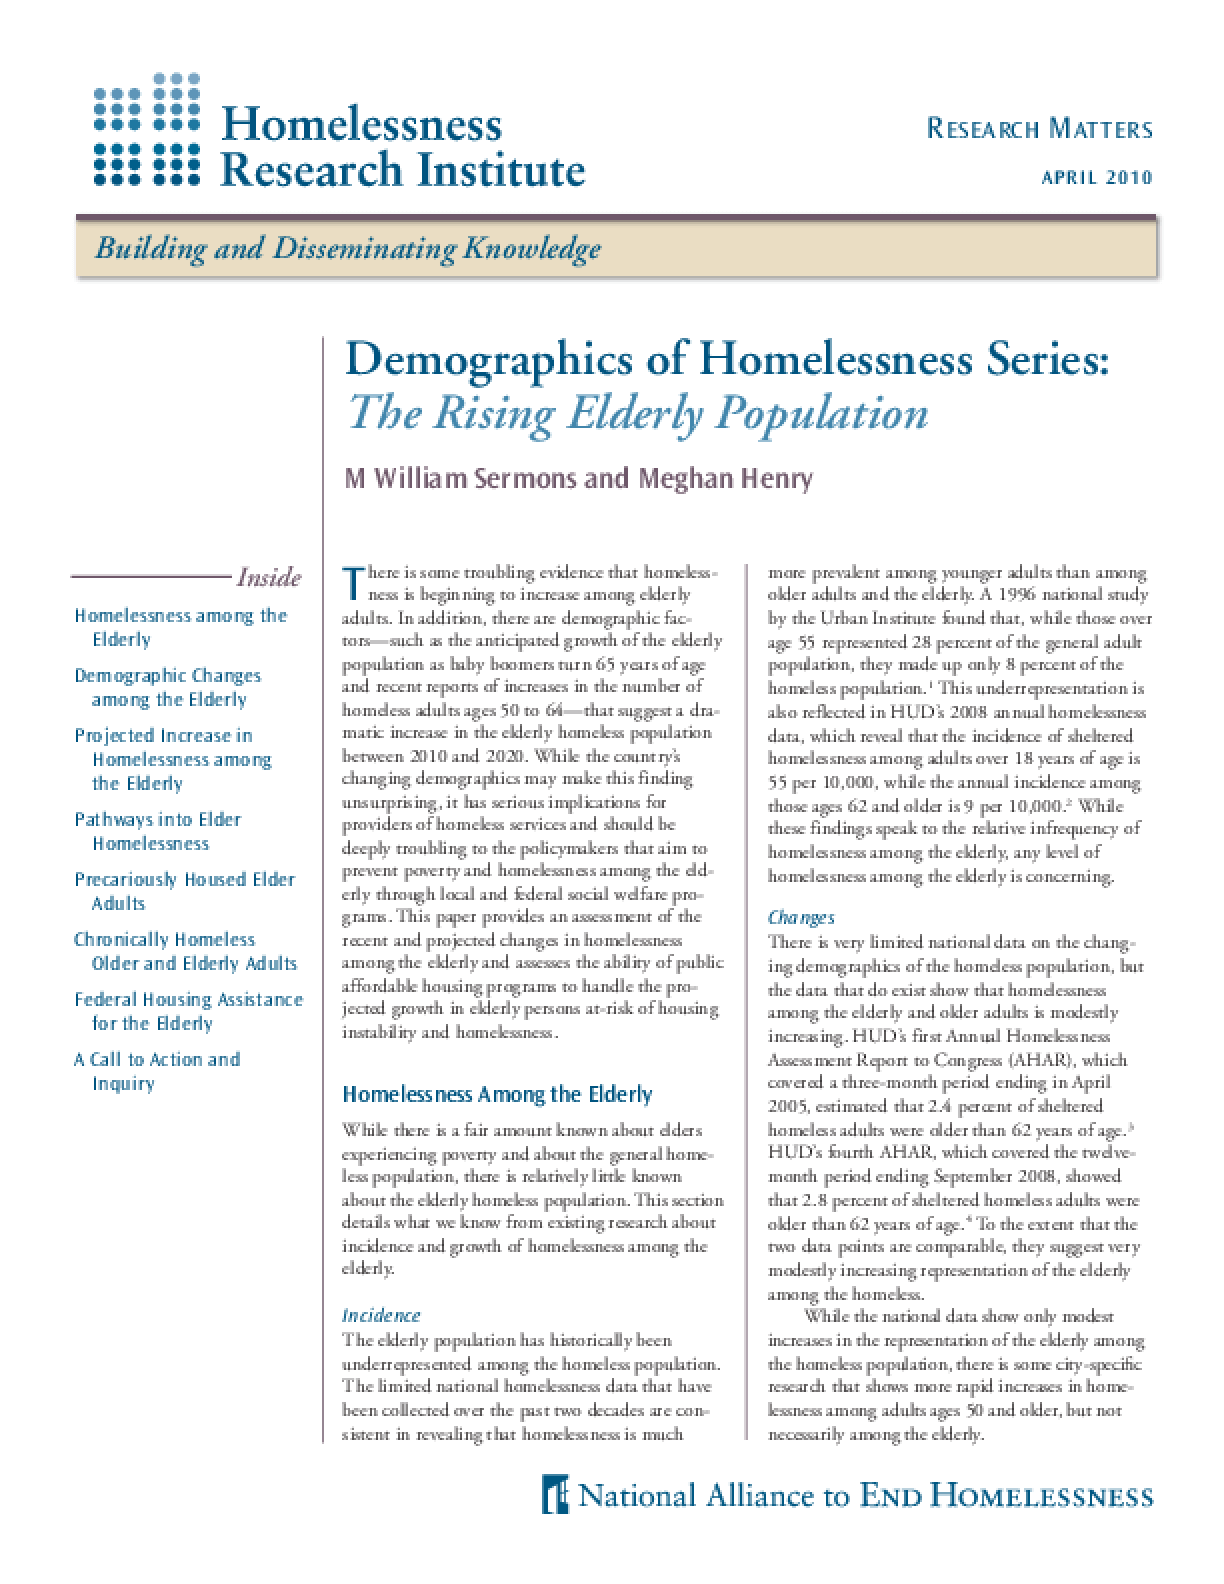 Demographics of Homelessness Series: The Rising Elderly Population